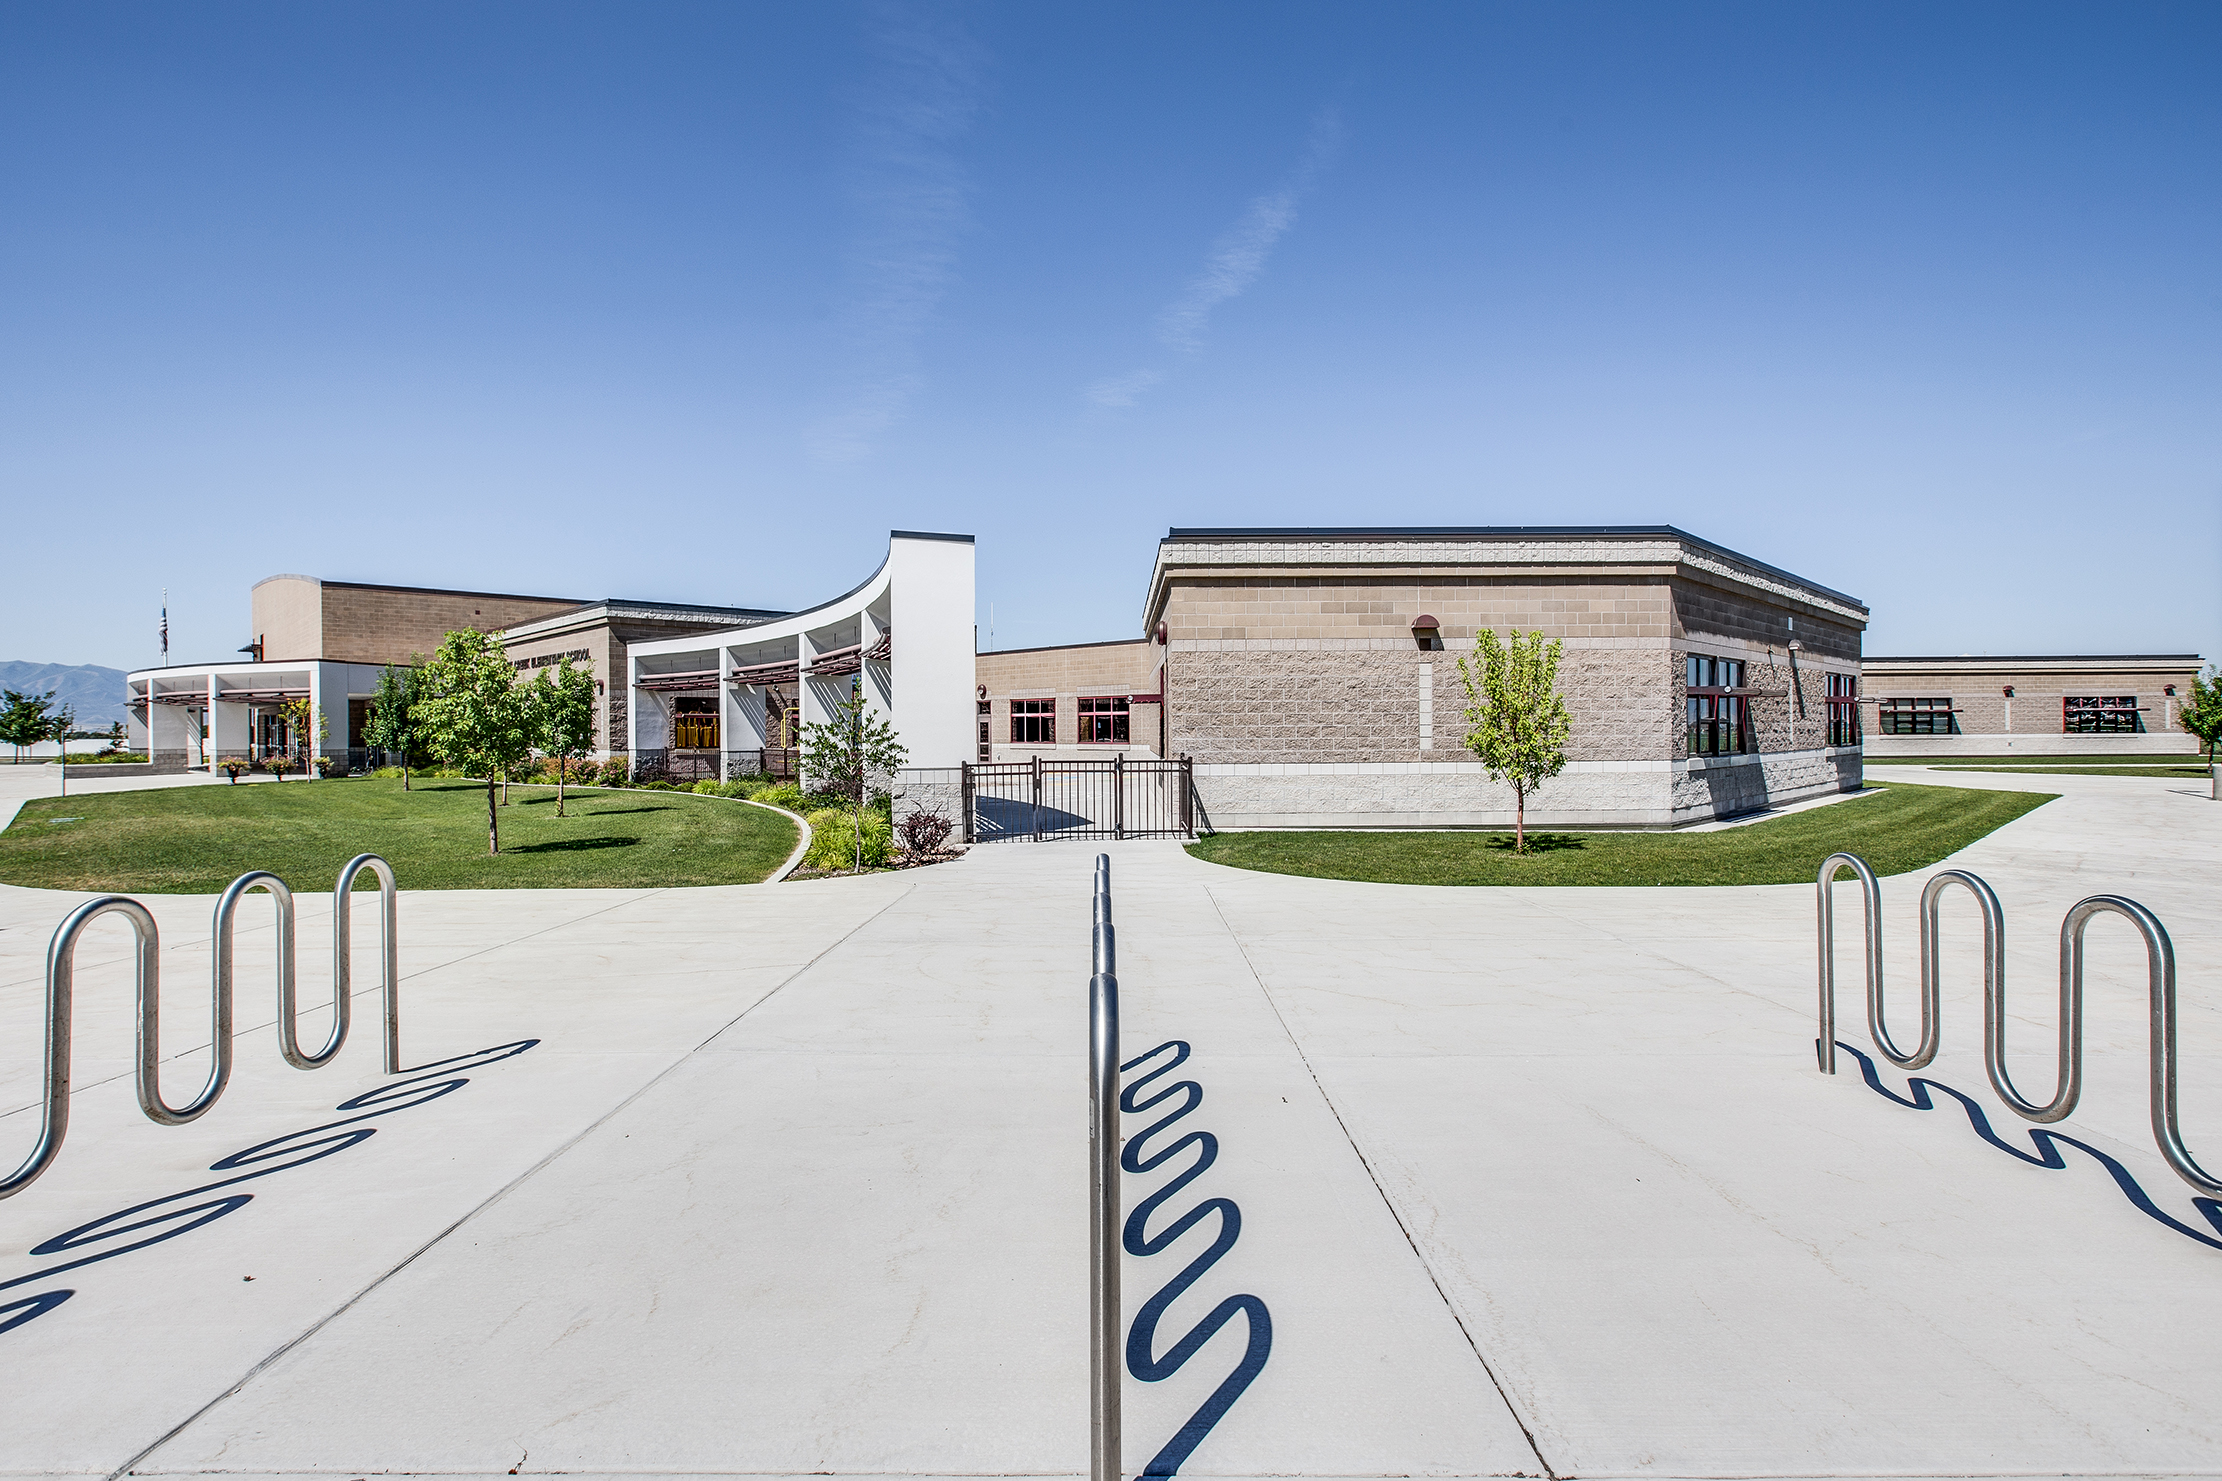 Birch Creek Elementary School - Smithfield, UT